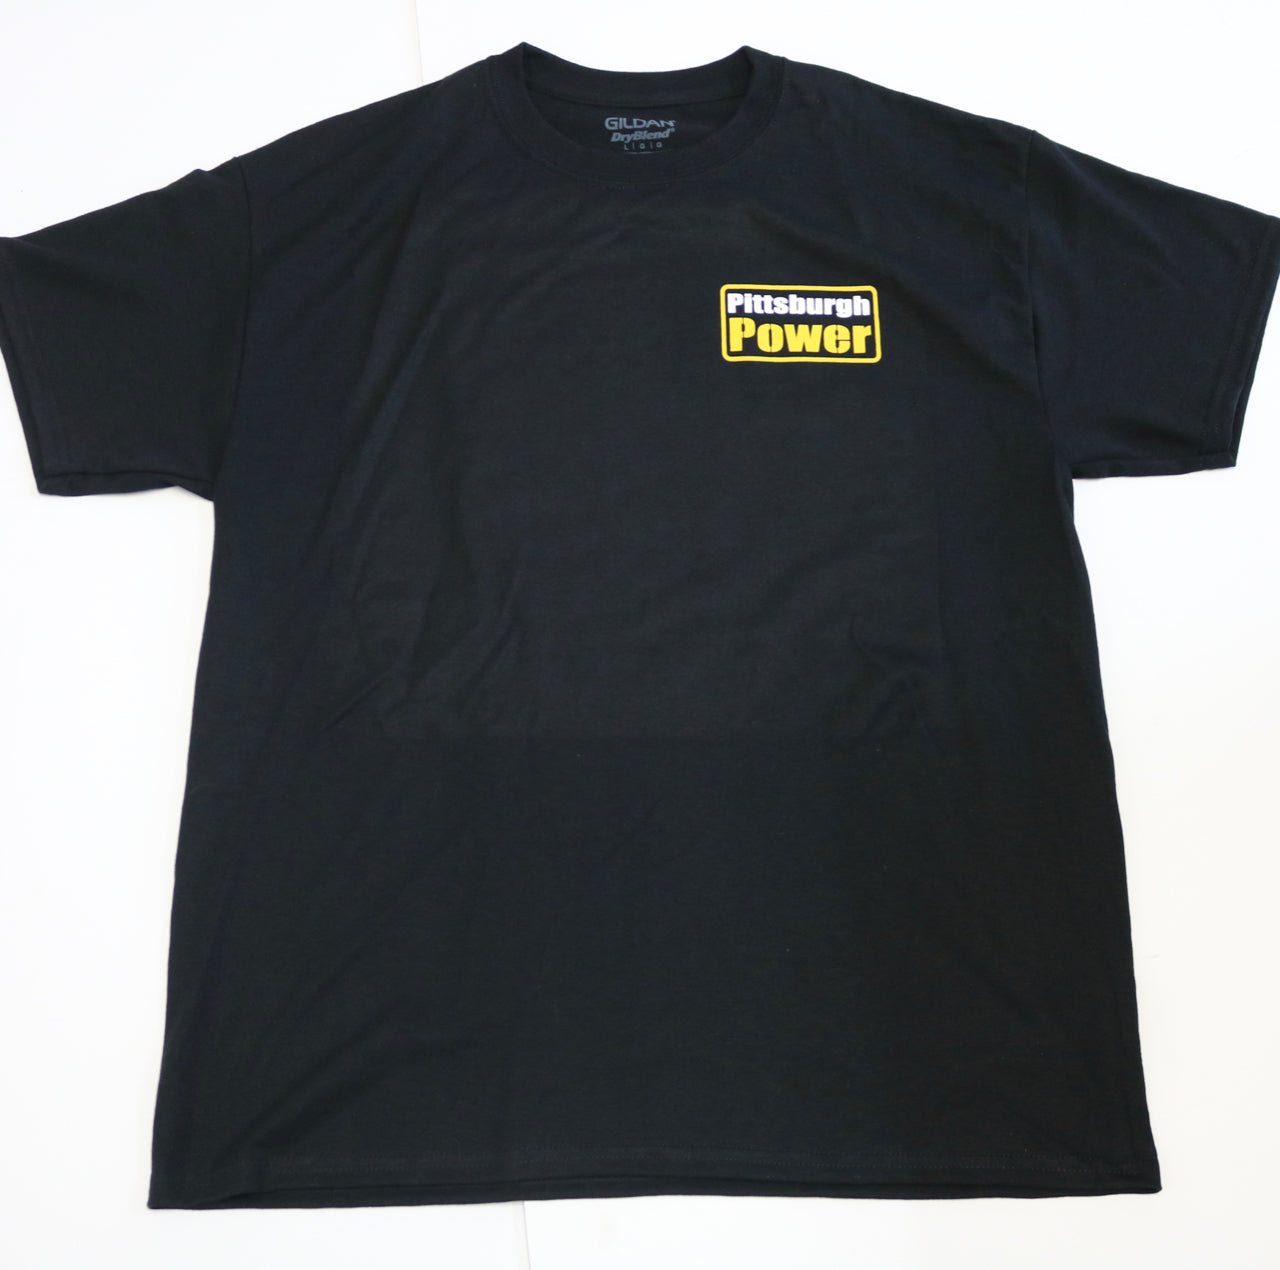 New Pittsburgh Power T-Shirt